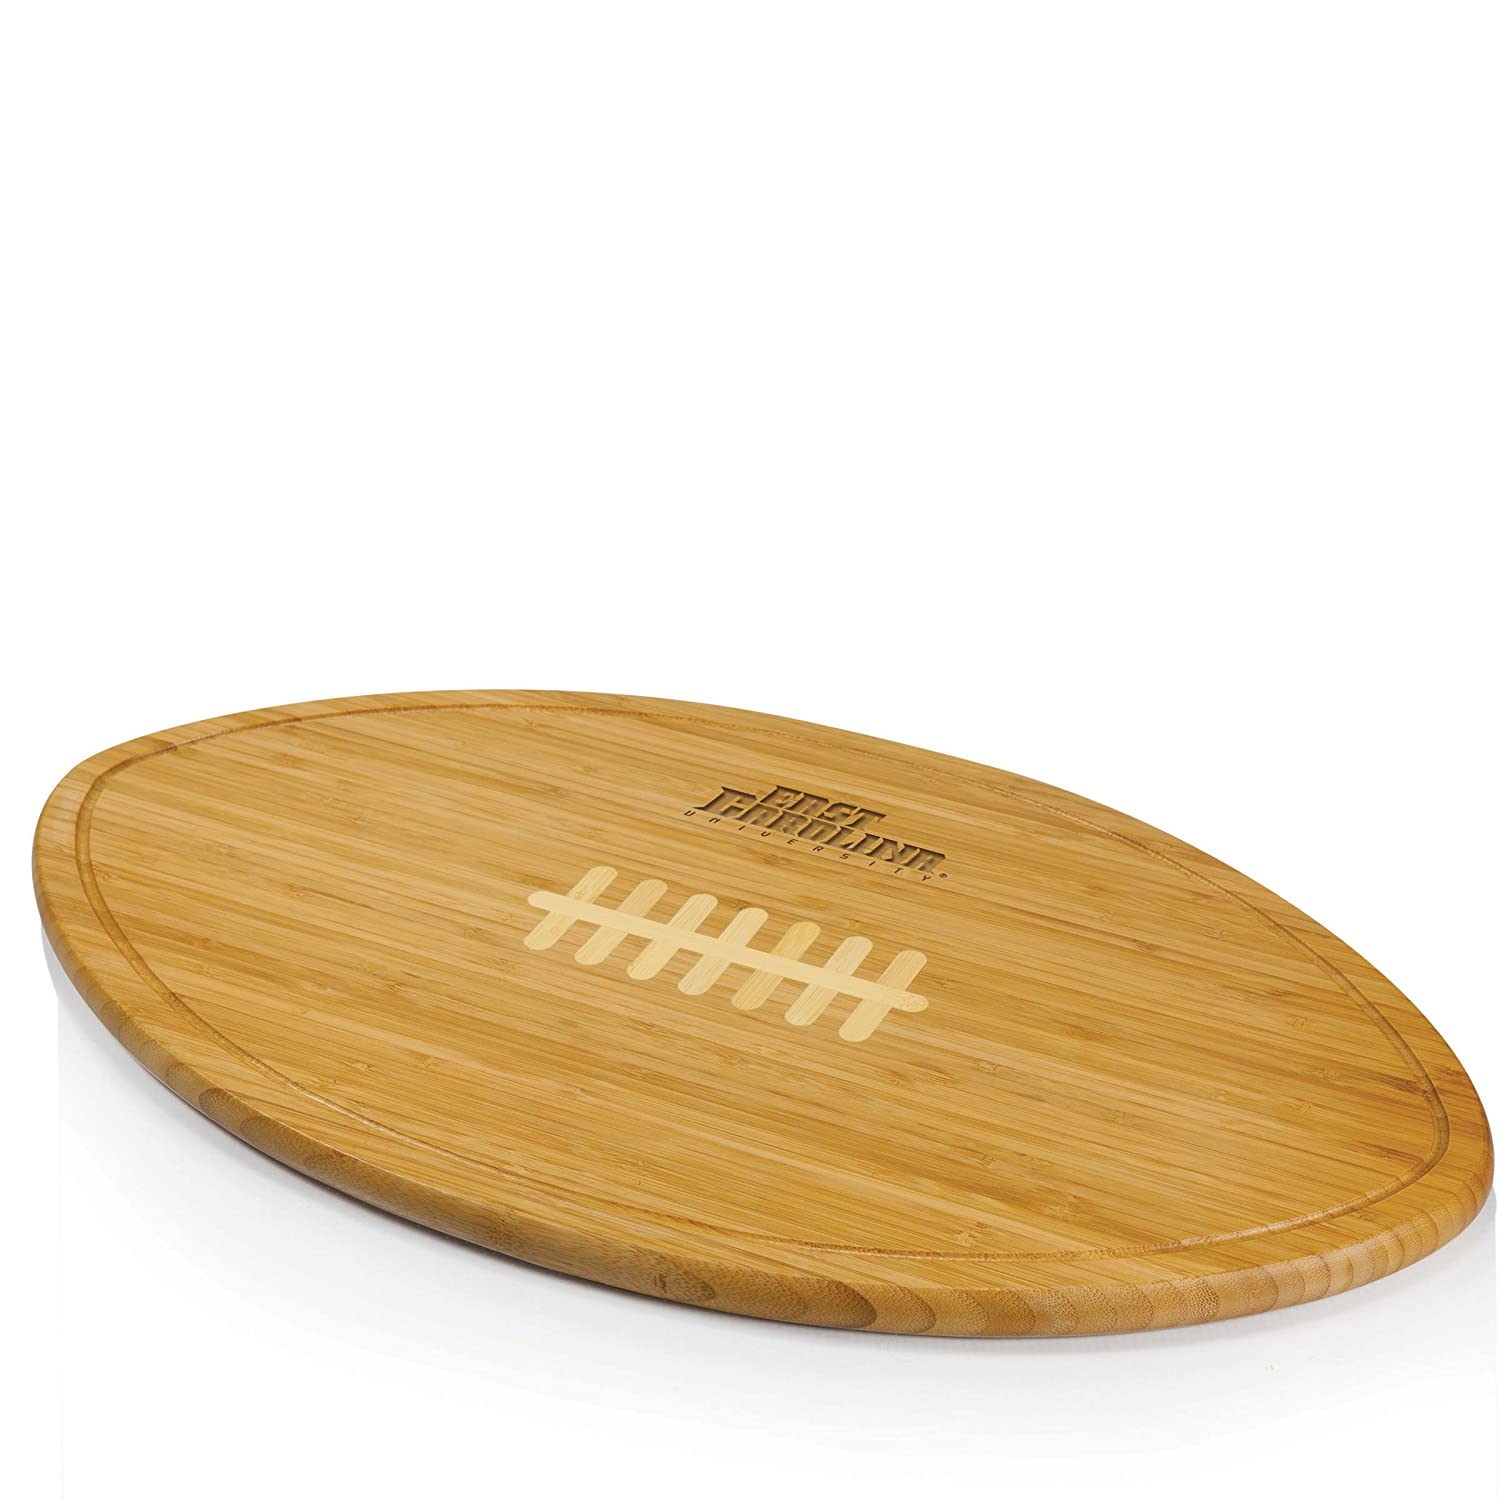 NCAA East Carolina Pirates Kickoff Cheese Board   B00FBU8RLS